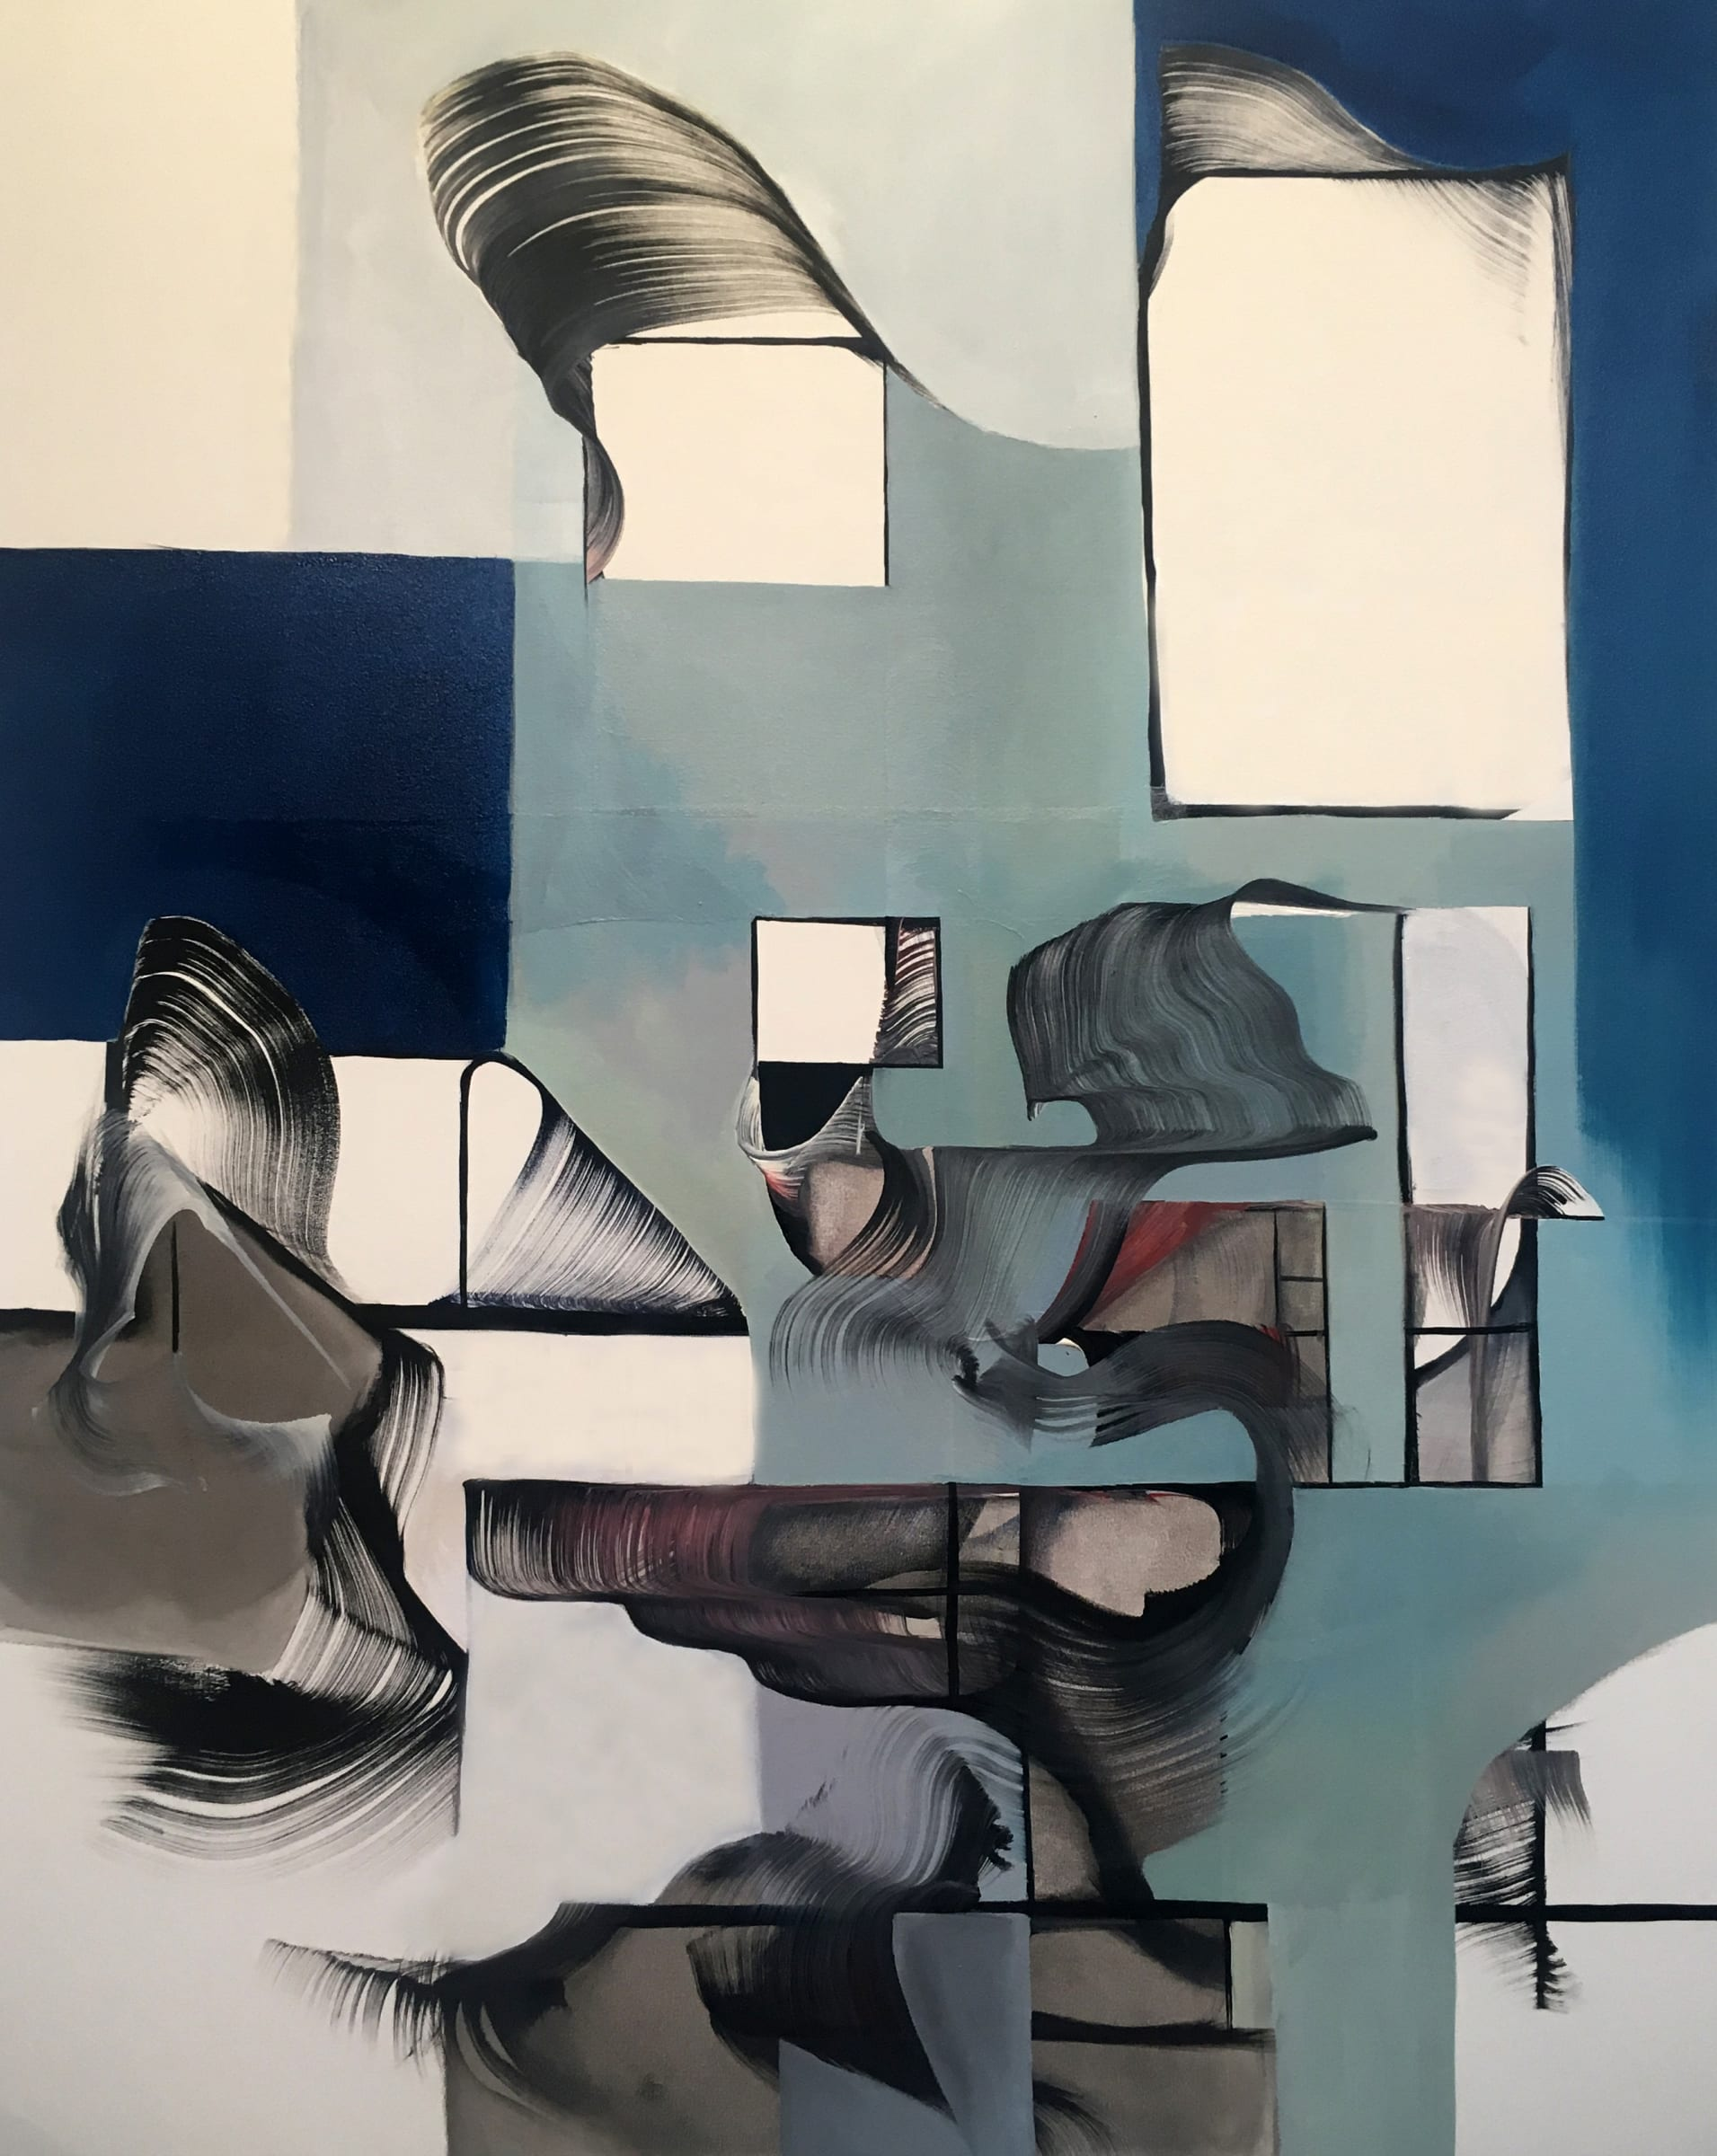 "<span class=""link fancybox-details-link""><a href=""/artists/71-laina-terpstra/works/494-laina-terpstra-untitled/"">View Detail Page</a></span>Laina Terpstra   Untitled   Oil on Canvas   60 x 48 inches"